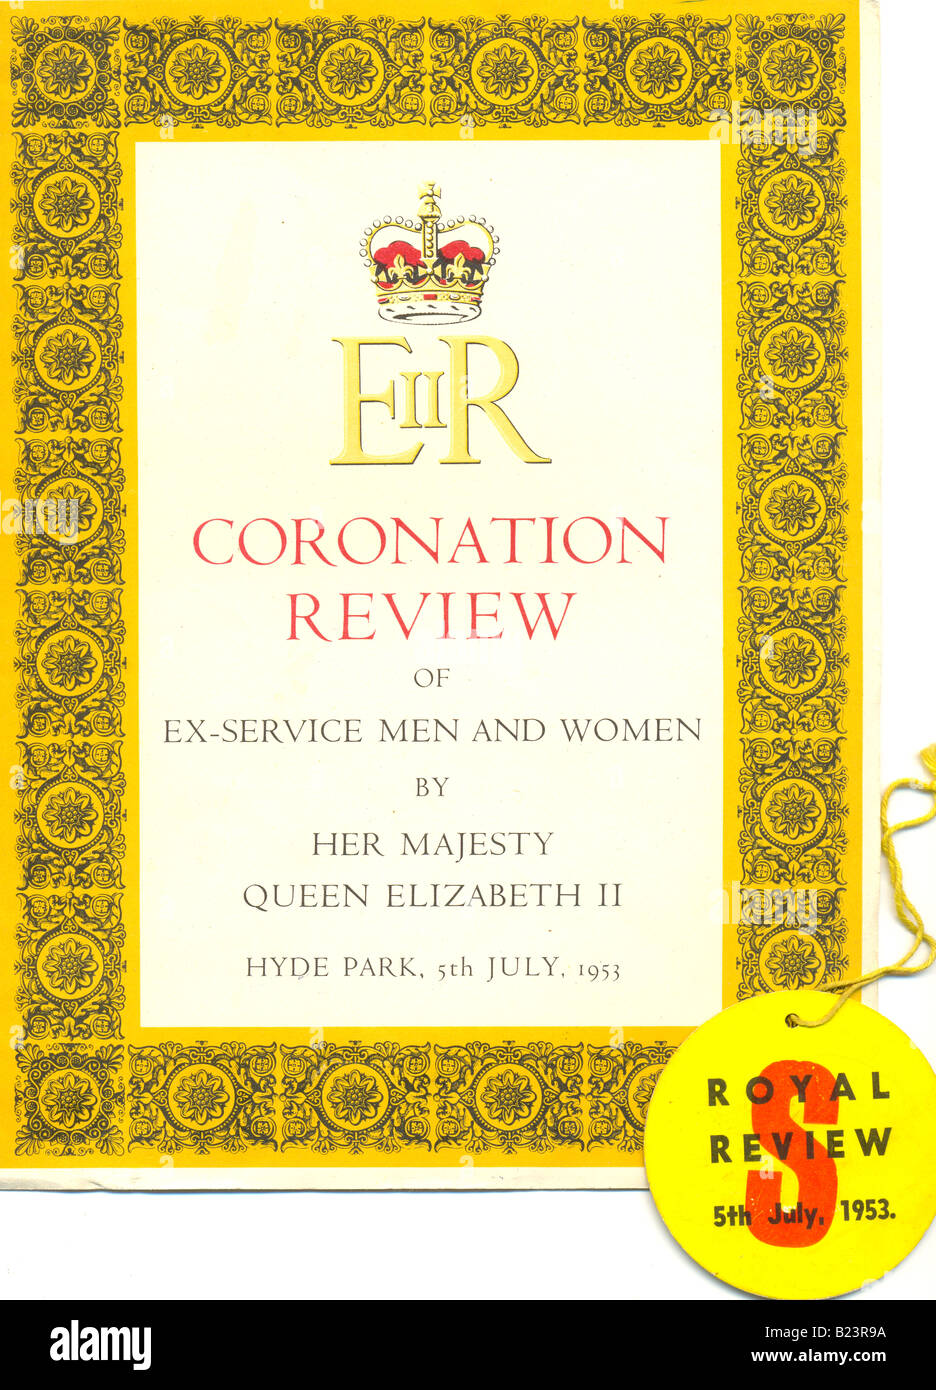 Programme and badge for the Coronation Review for Queen Elizabeth II - Stock Image